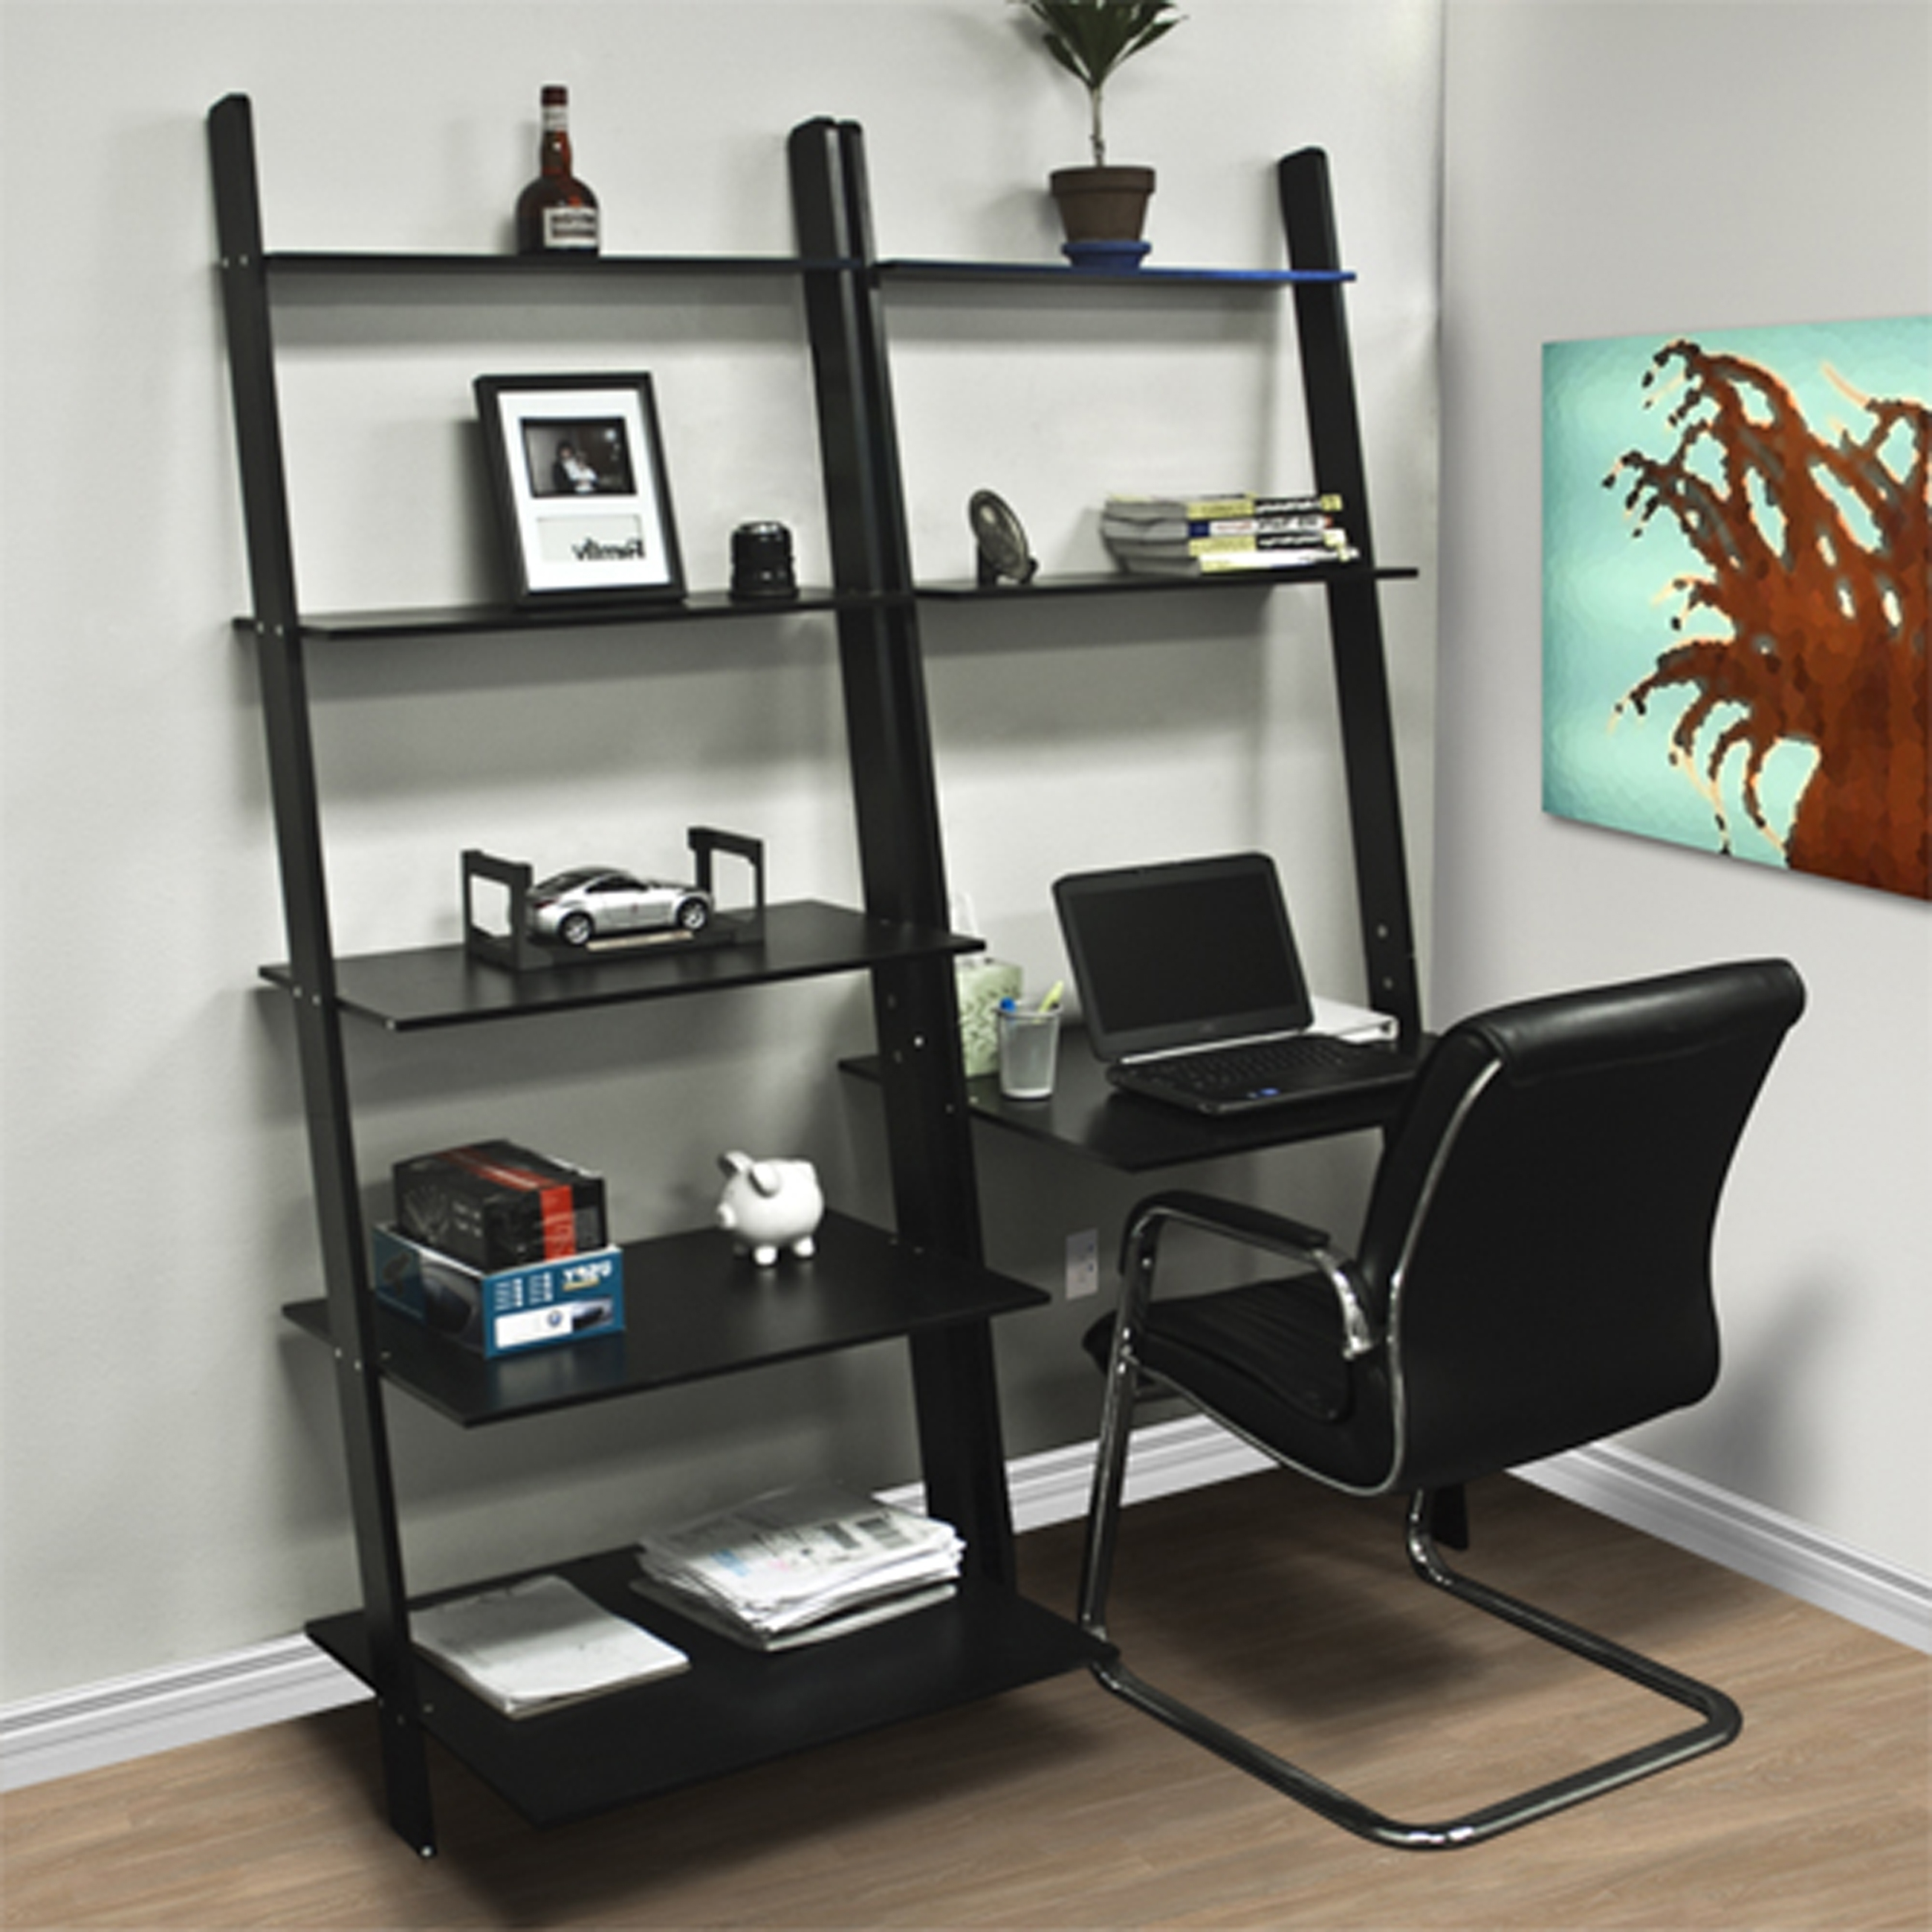 mainstays bookshelf ip com desk computer walmart black